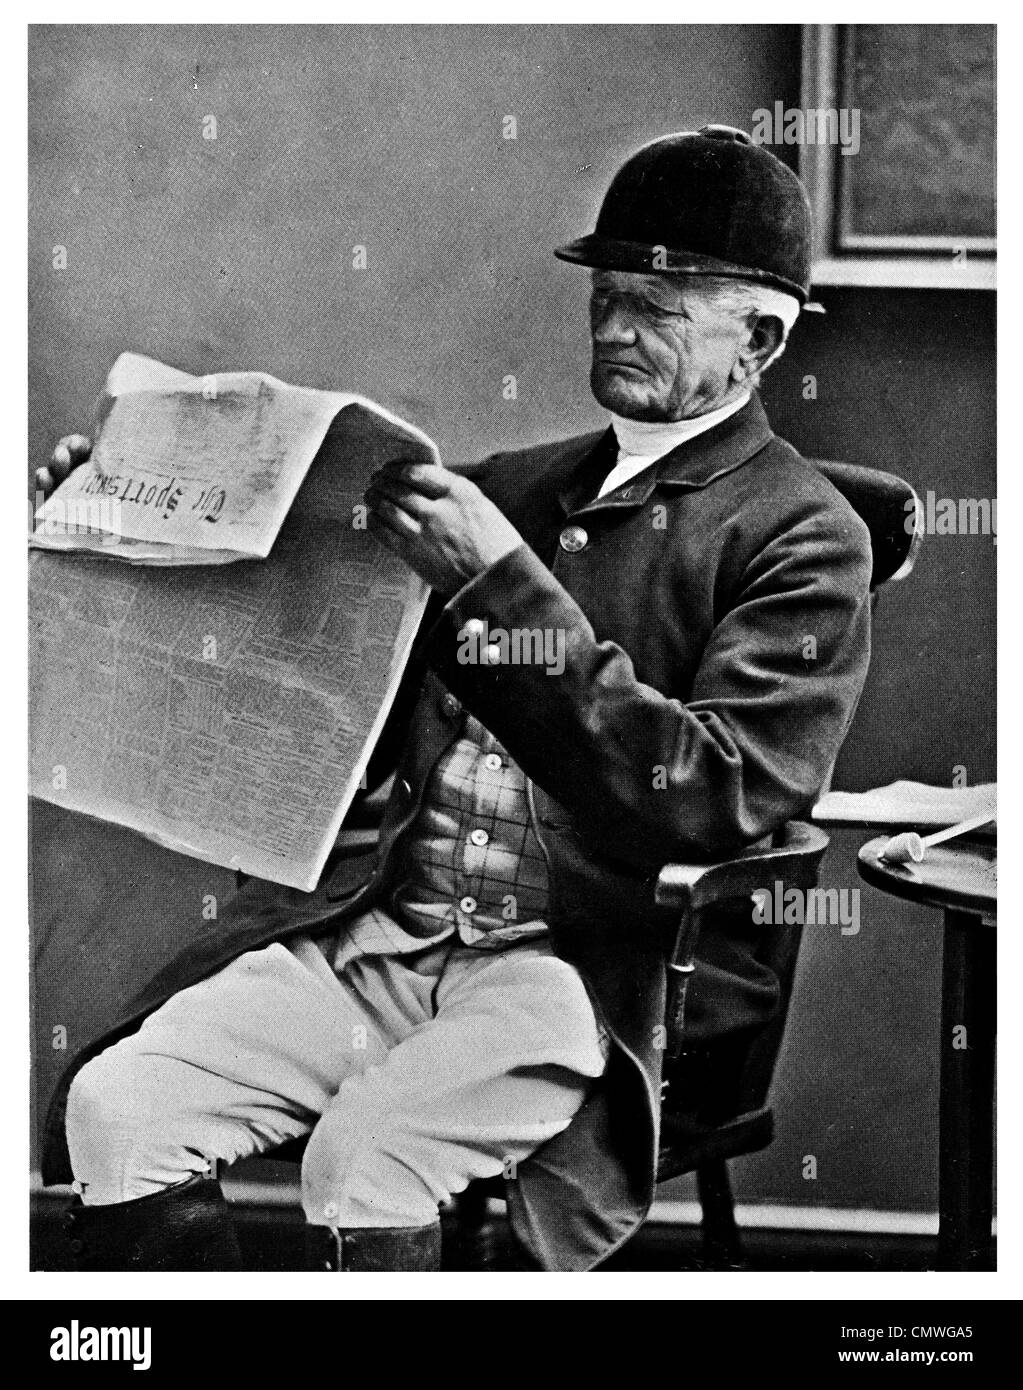 1905 sportsman fox hunter seated reading newspaper - Stock Image